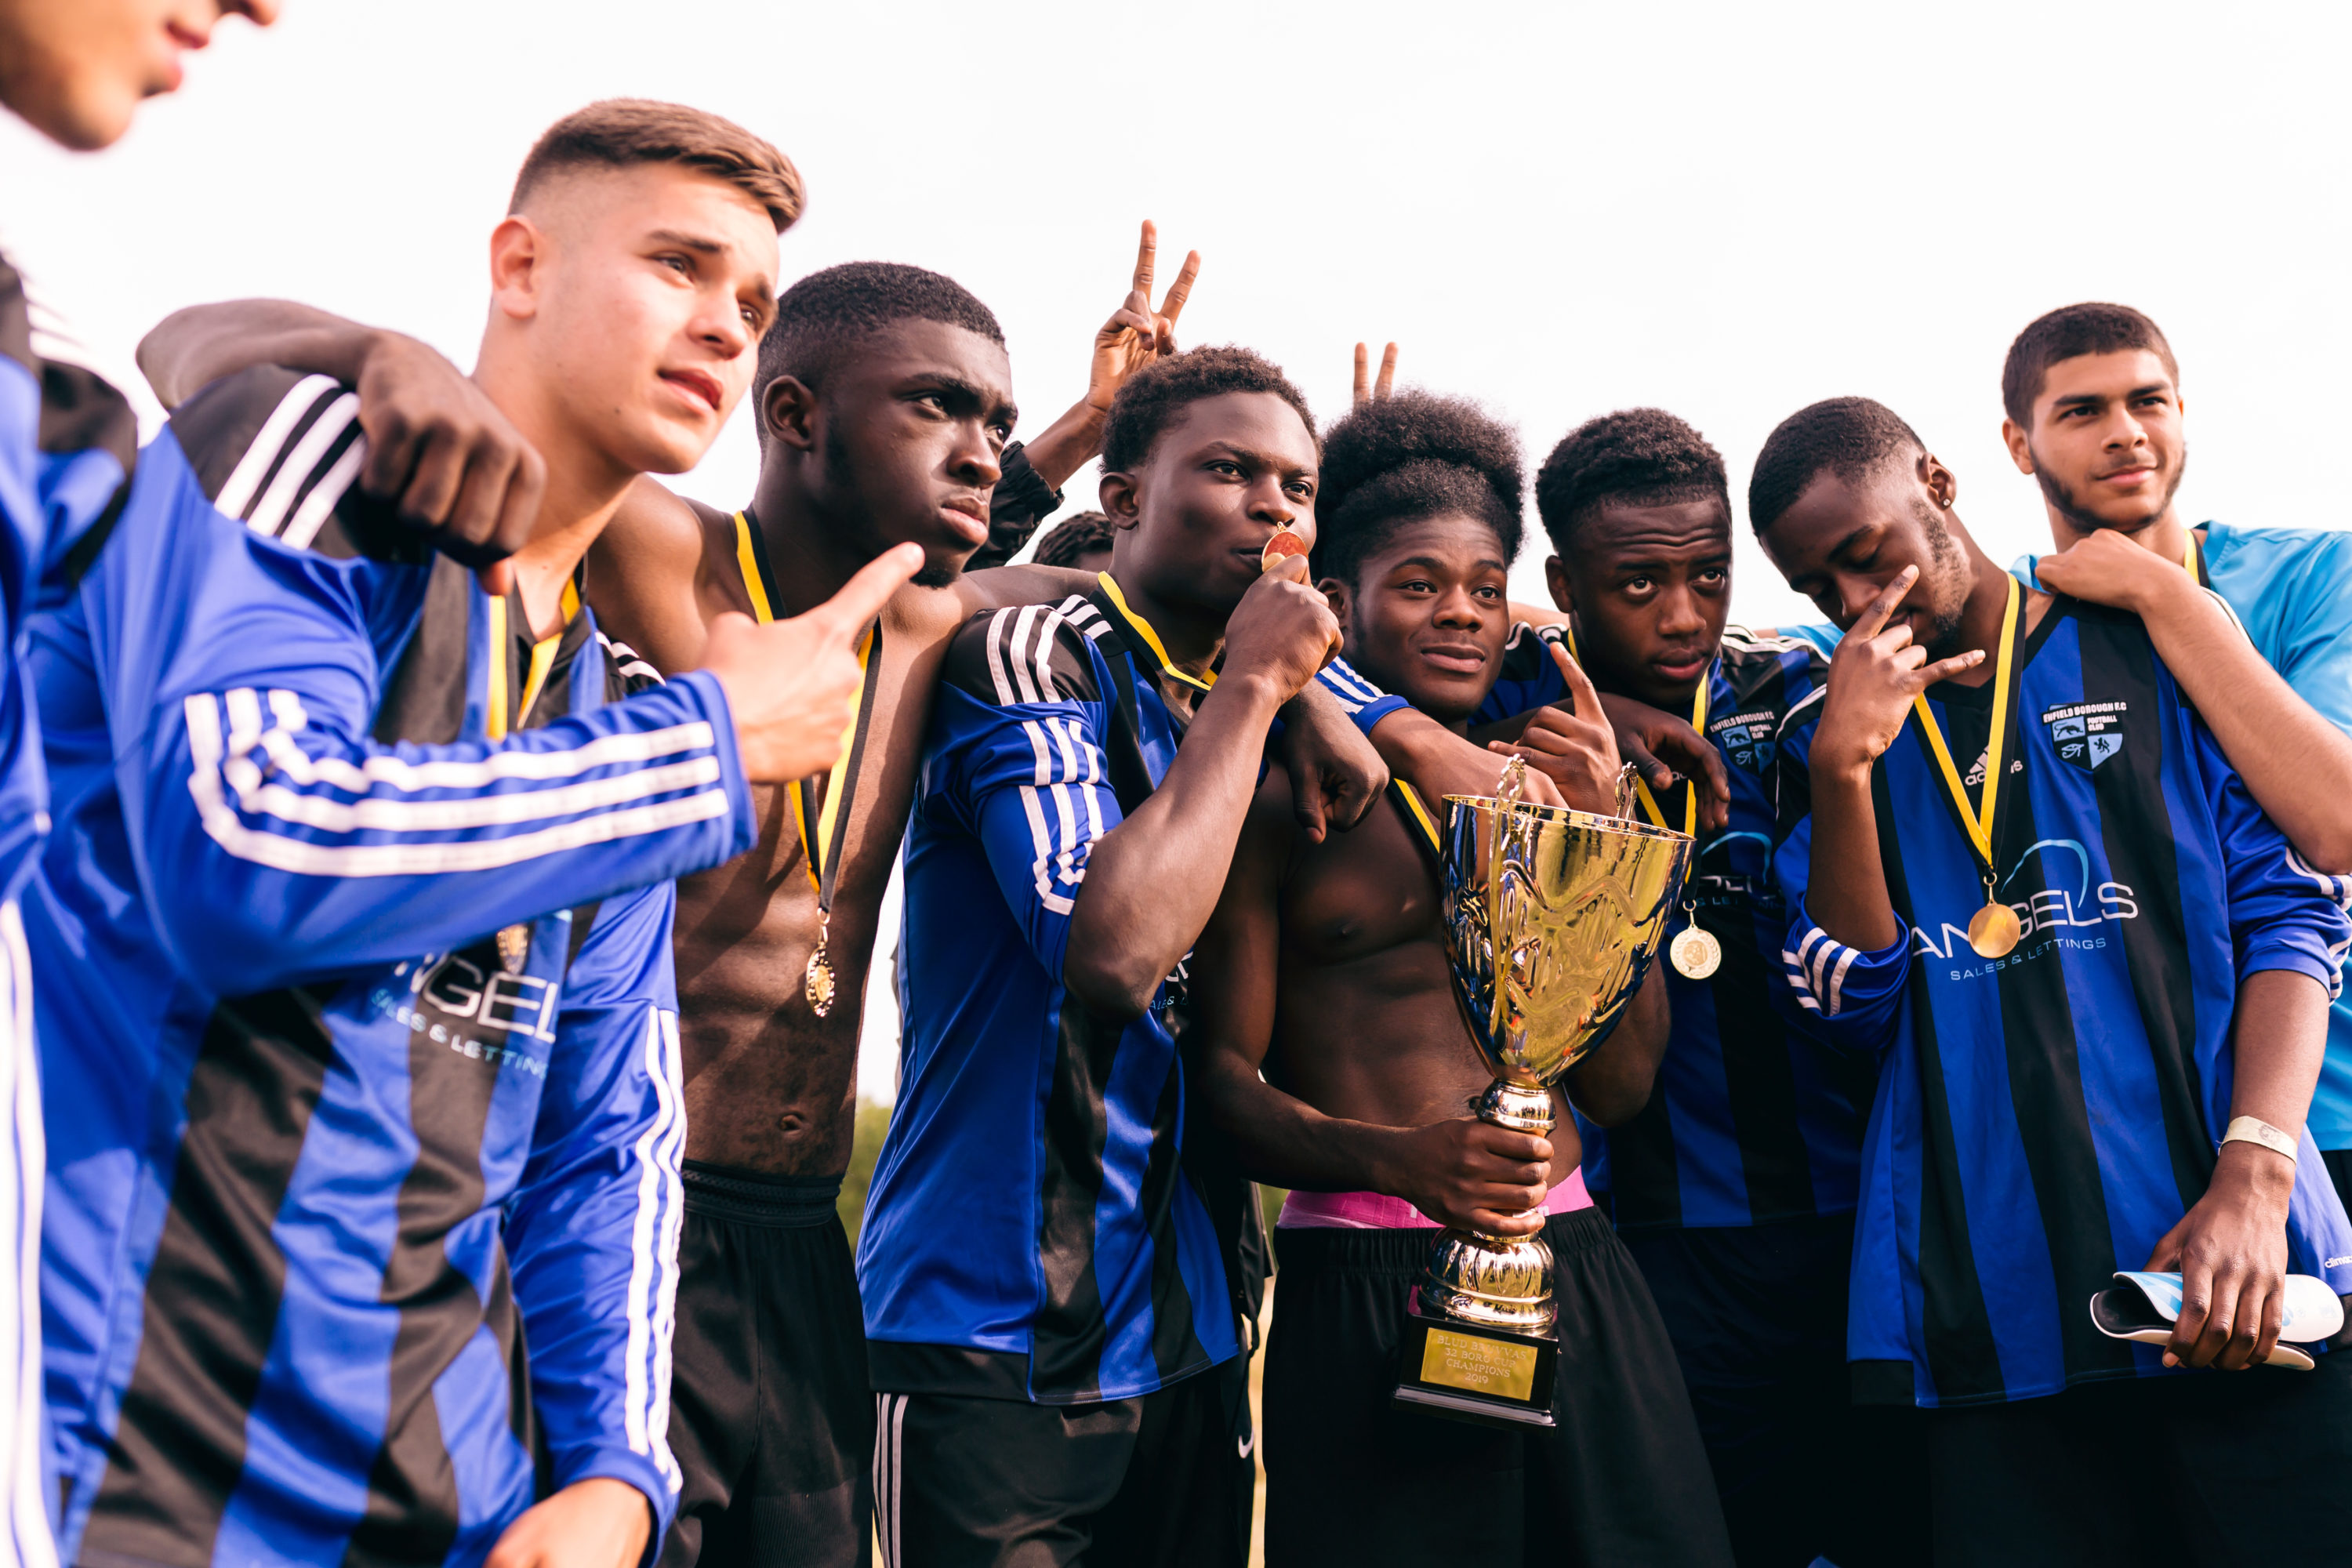 600 of London's Best Young Ballers Took Part in the First Ever 32 Boro Cup by Hackney Wick FC